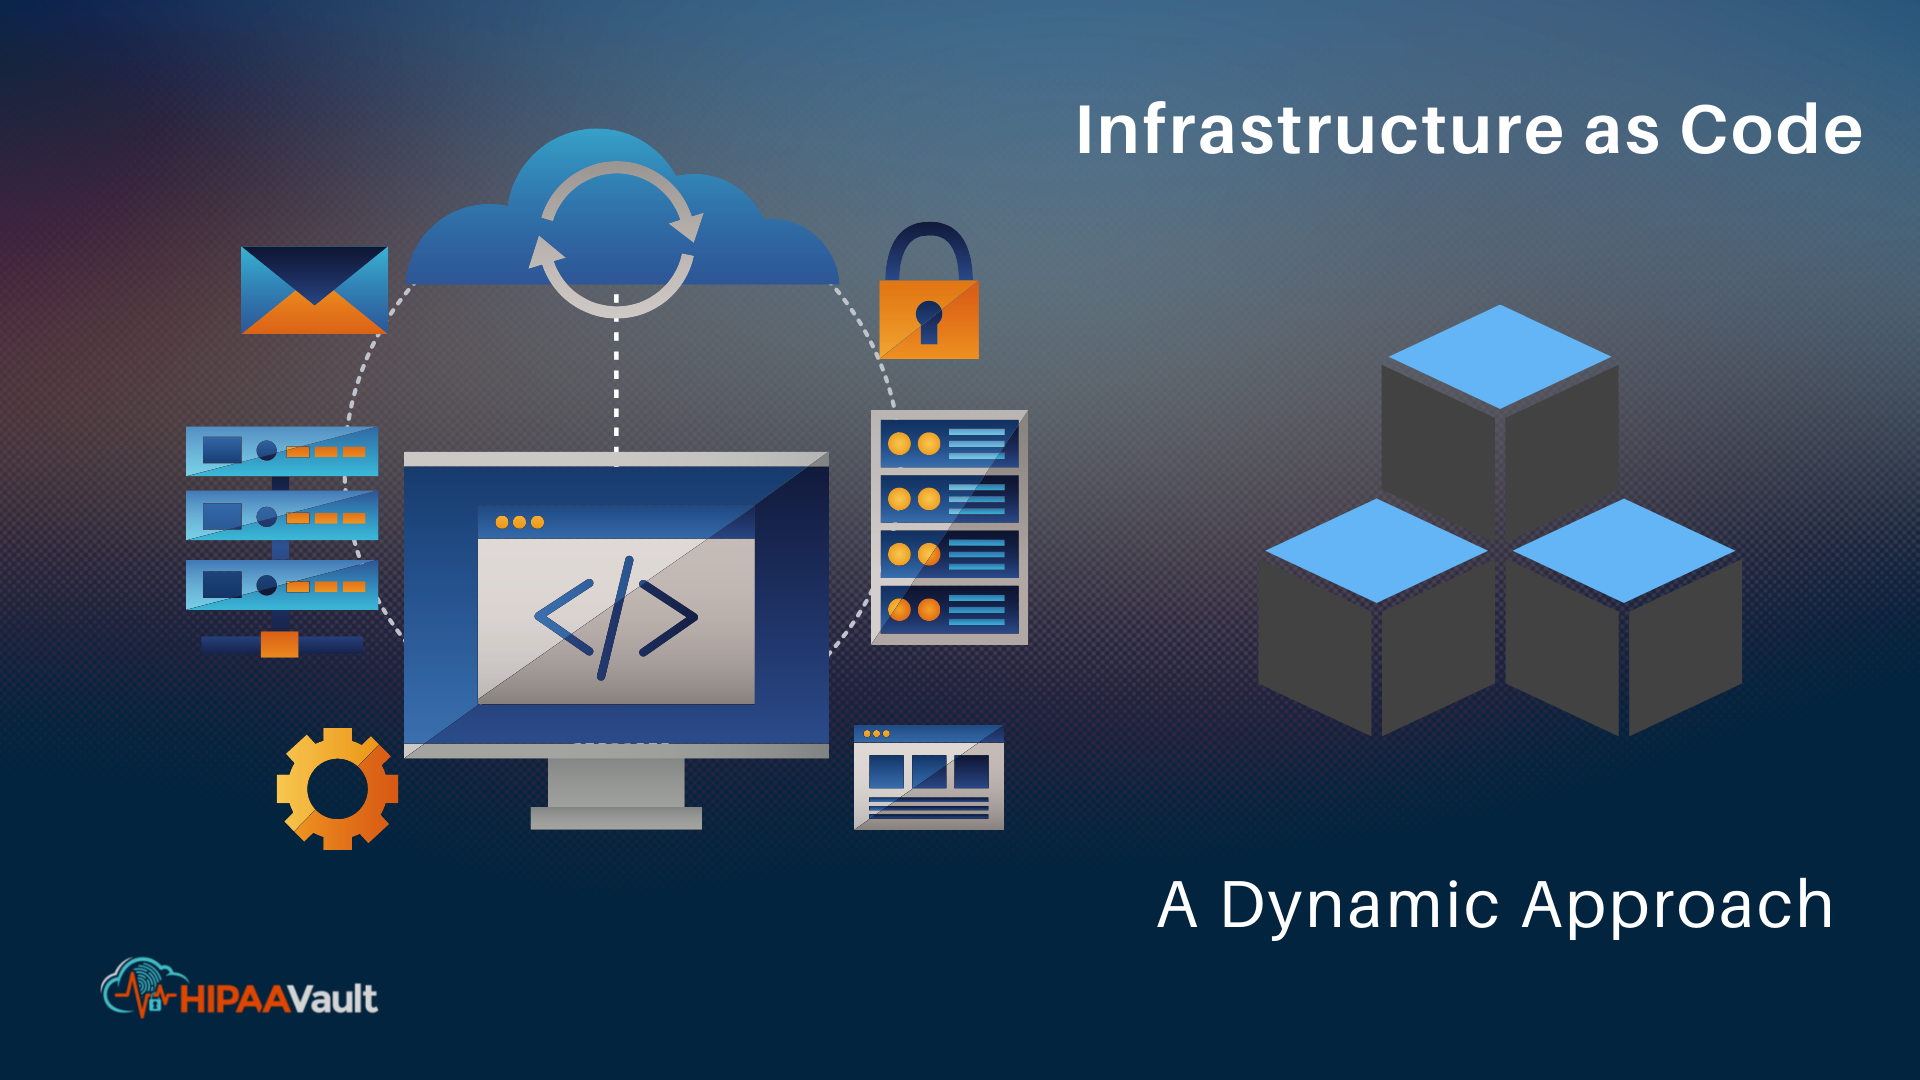 Infrastructure as Code: A Dynamic Approach